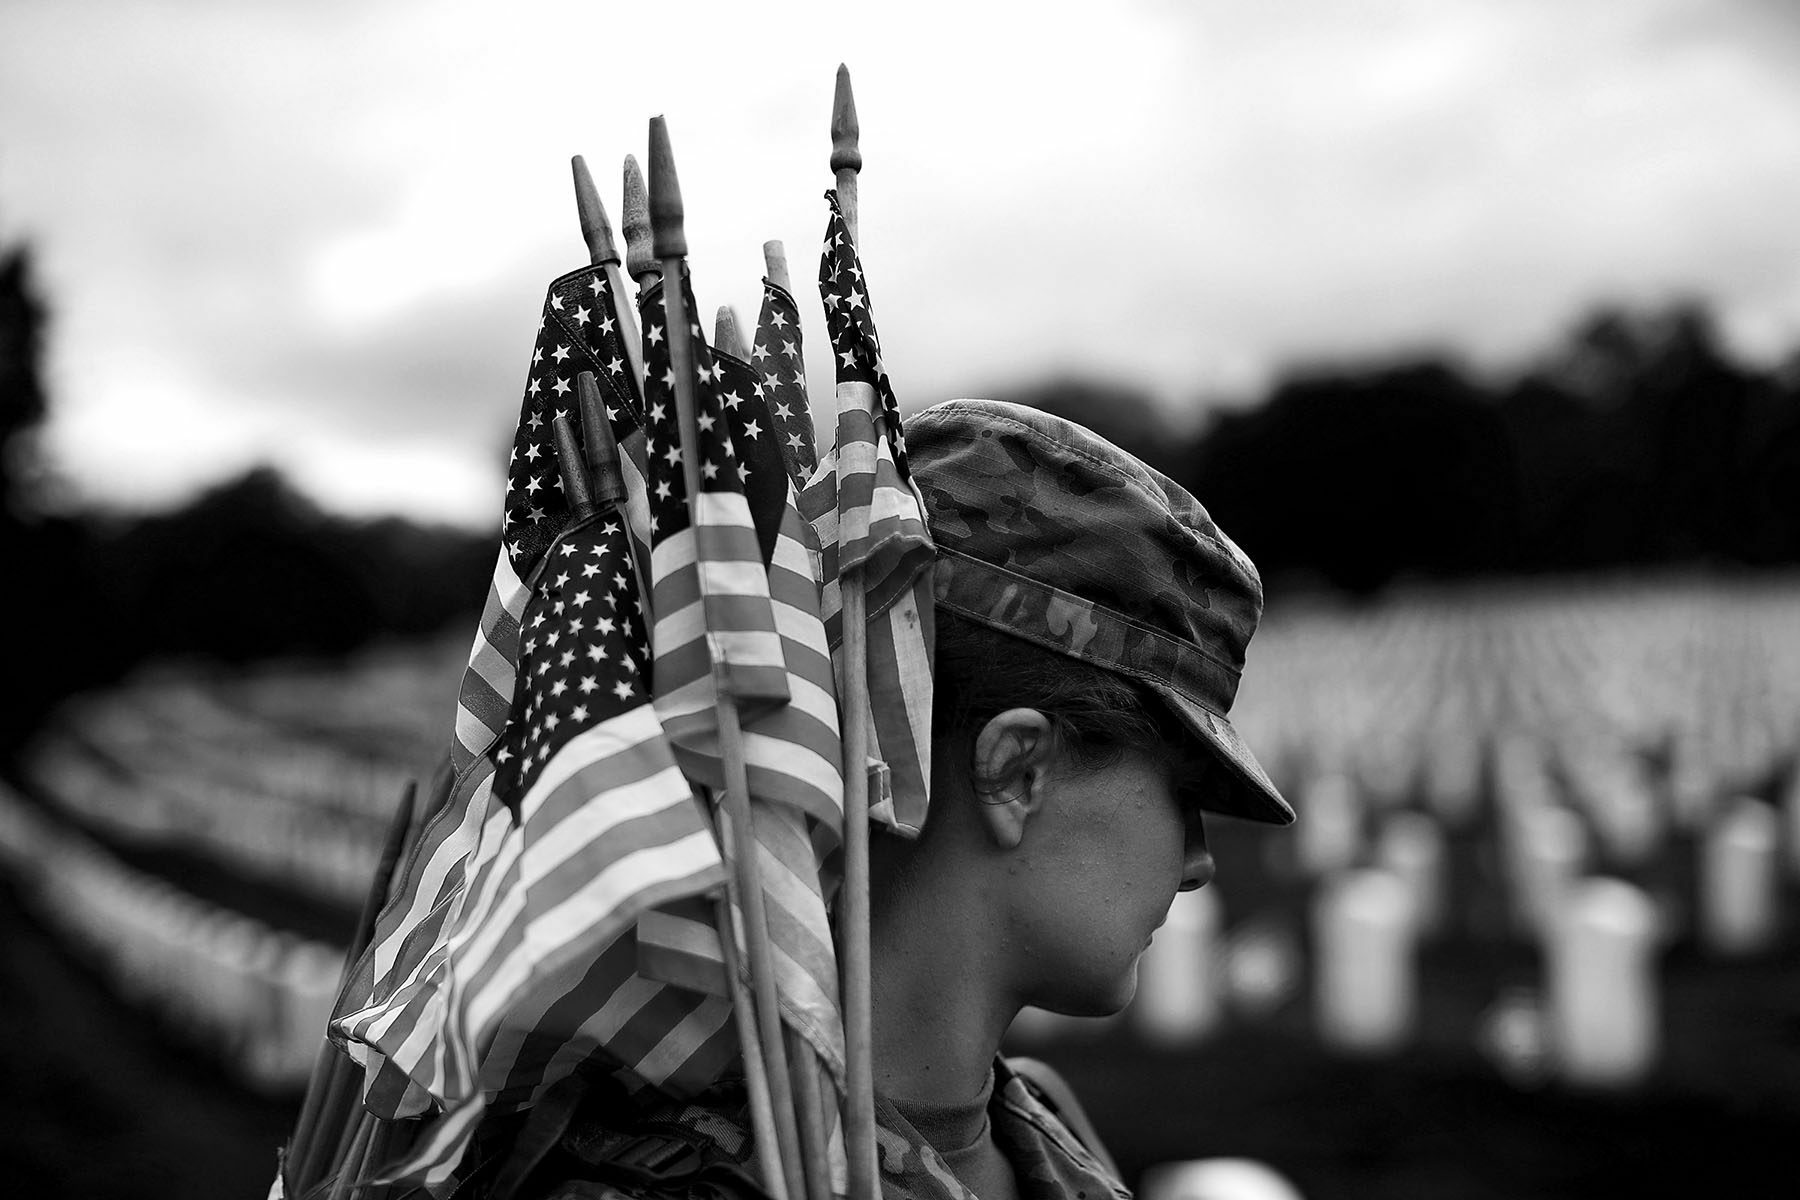 A female soldier holds American flags over her shoulder. Her face is partly obscured by her cap.